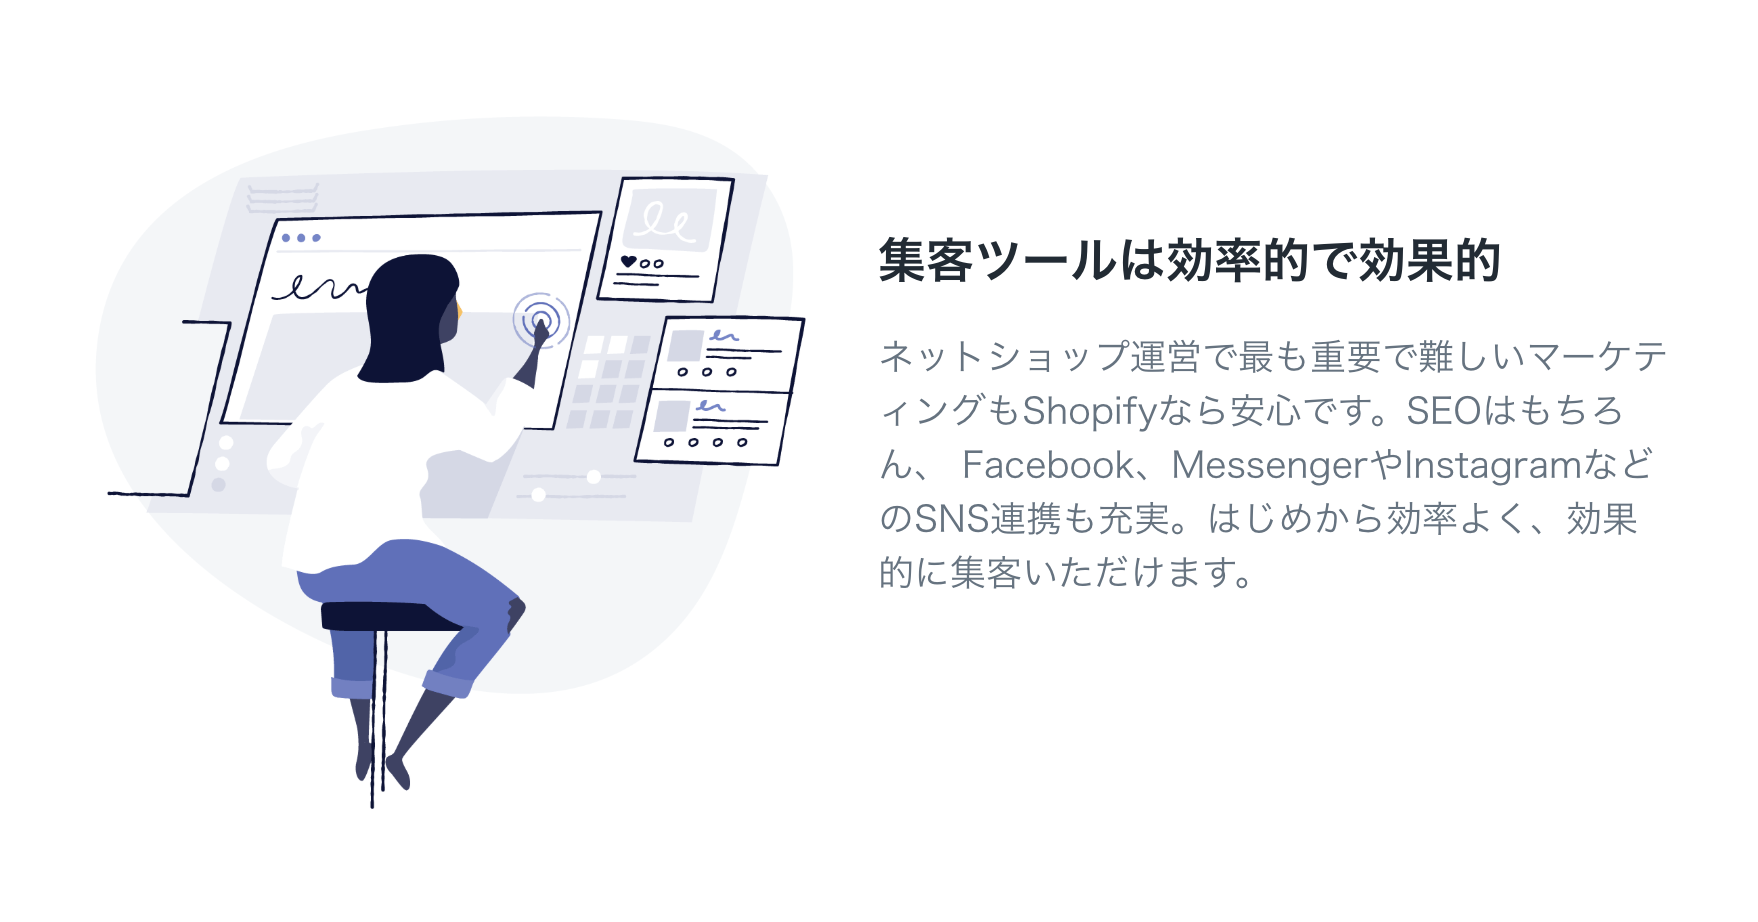 hreflang for multilingual stores - Japan features